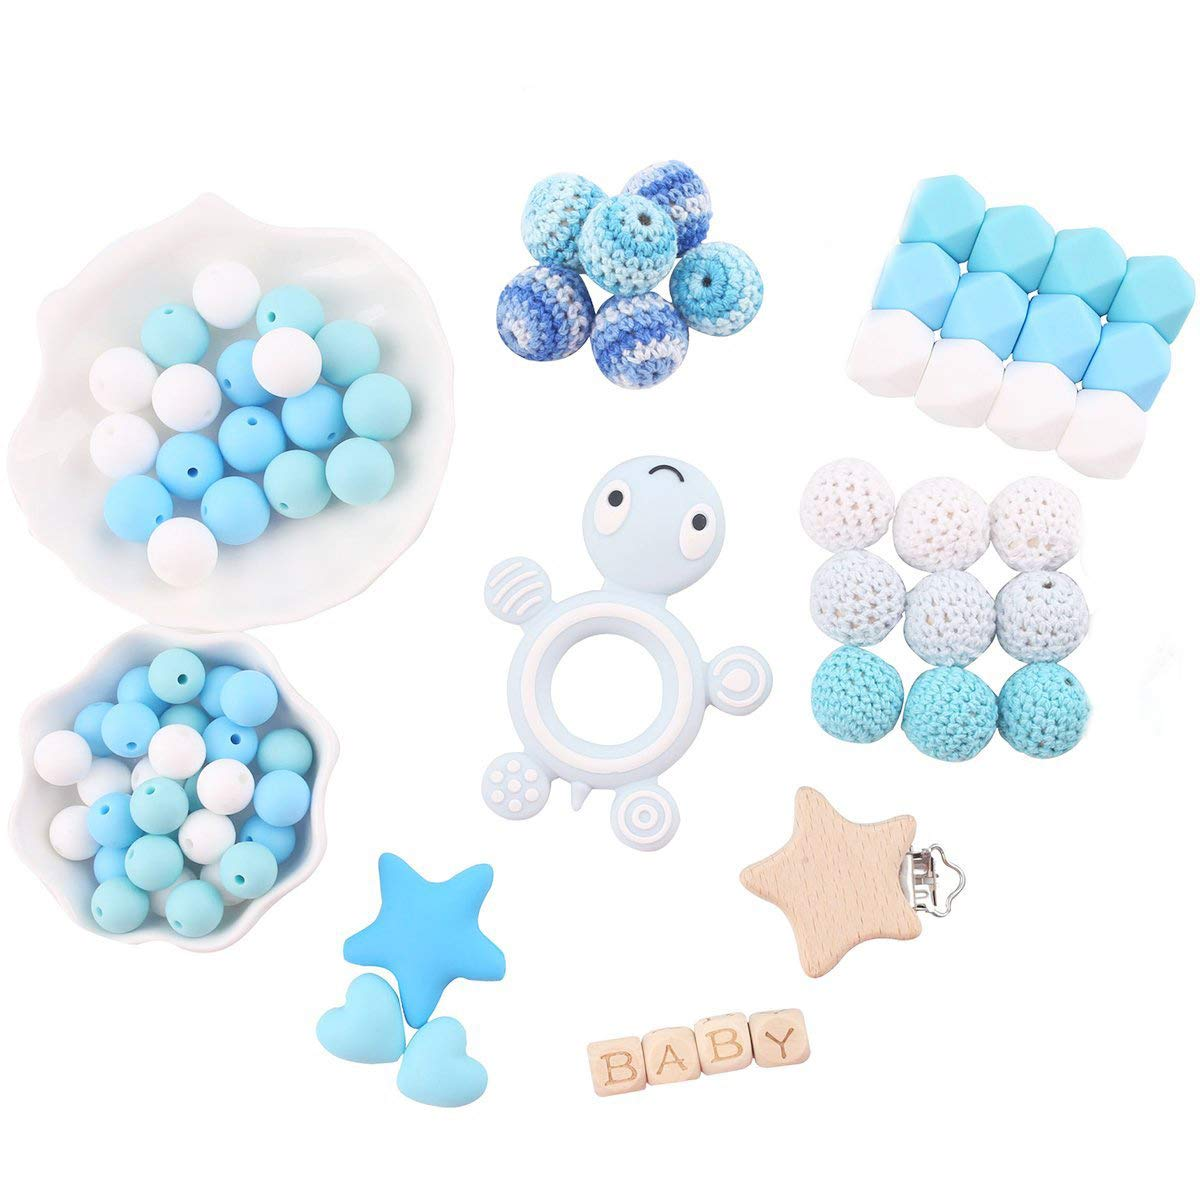 Baby Love Home DIY Silicone Teething Accessory Organic Wooden Pacifier Clip Teether Making Blue Tortoise Kit Teether Toys Newborn Mom Gifts by Baby Love Home